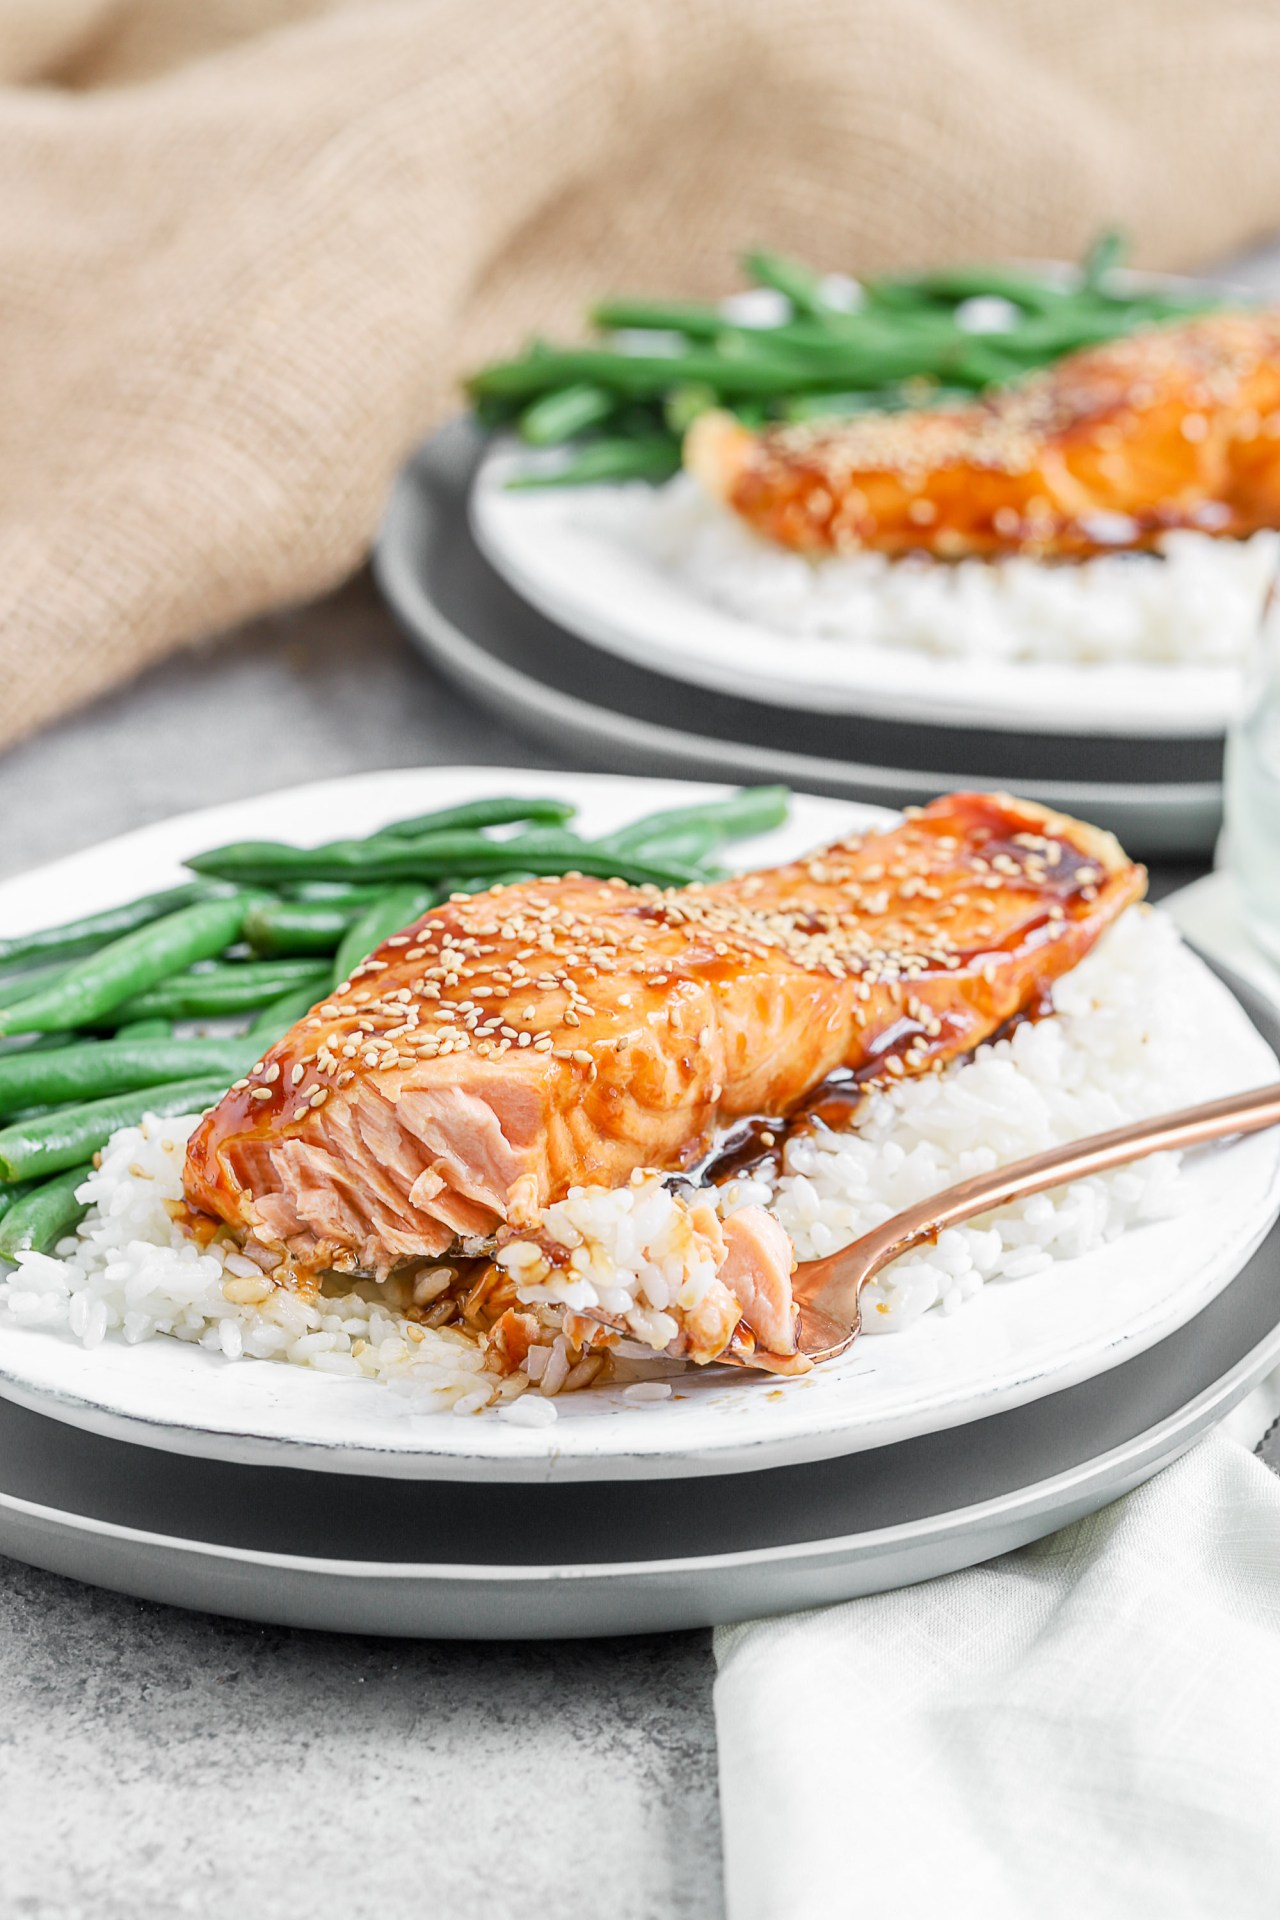 10 Minutes Maple Crusted Salmon